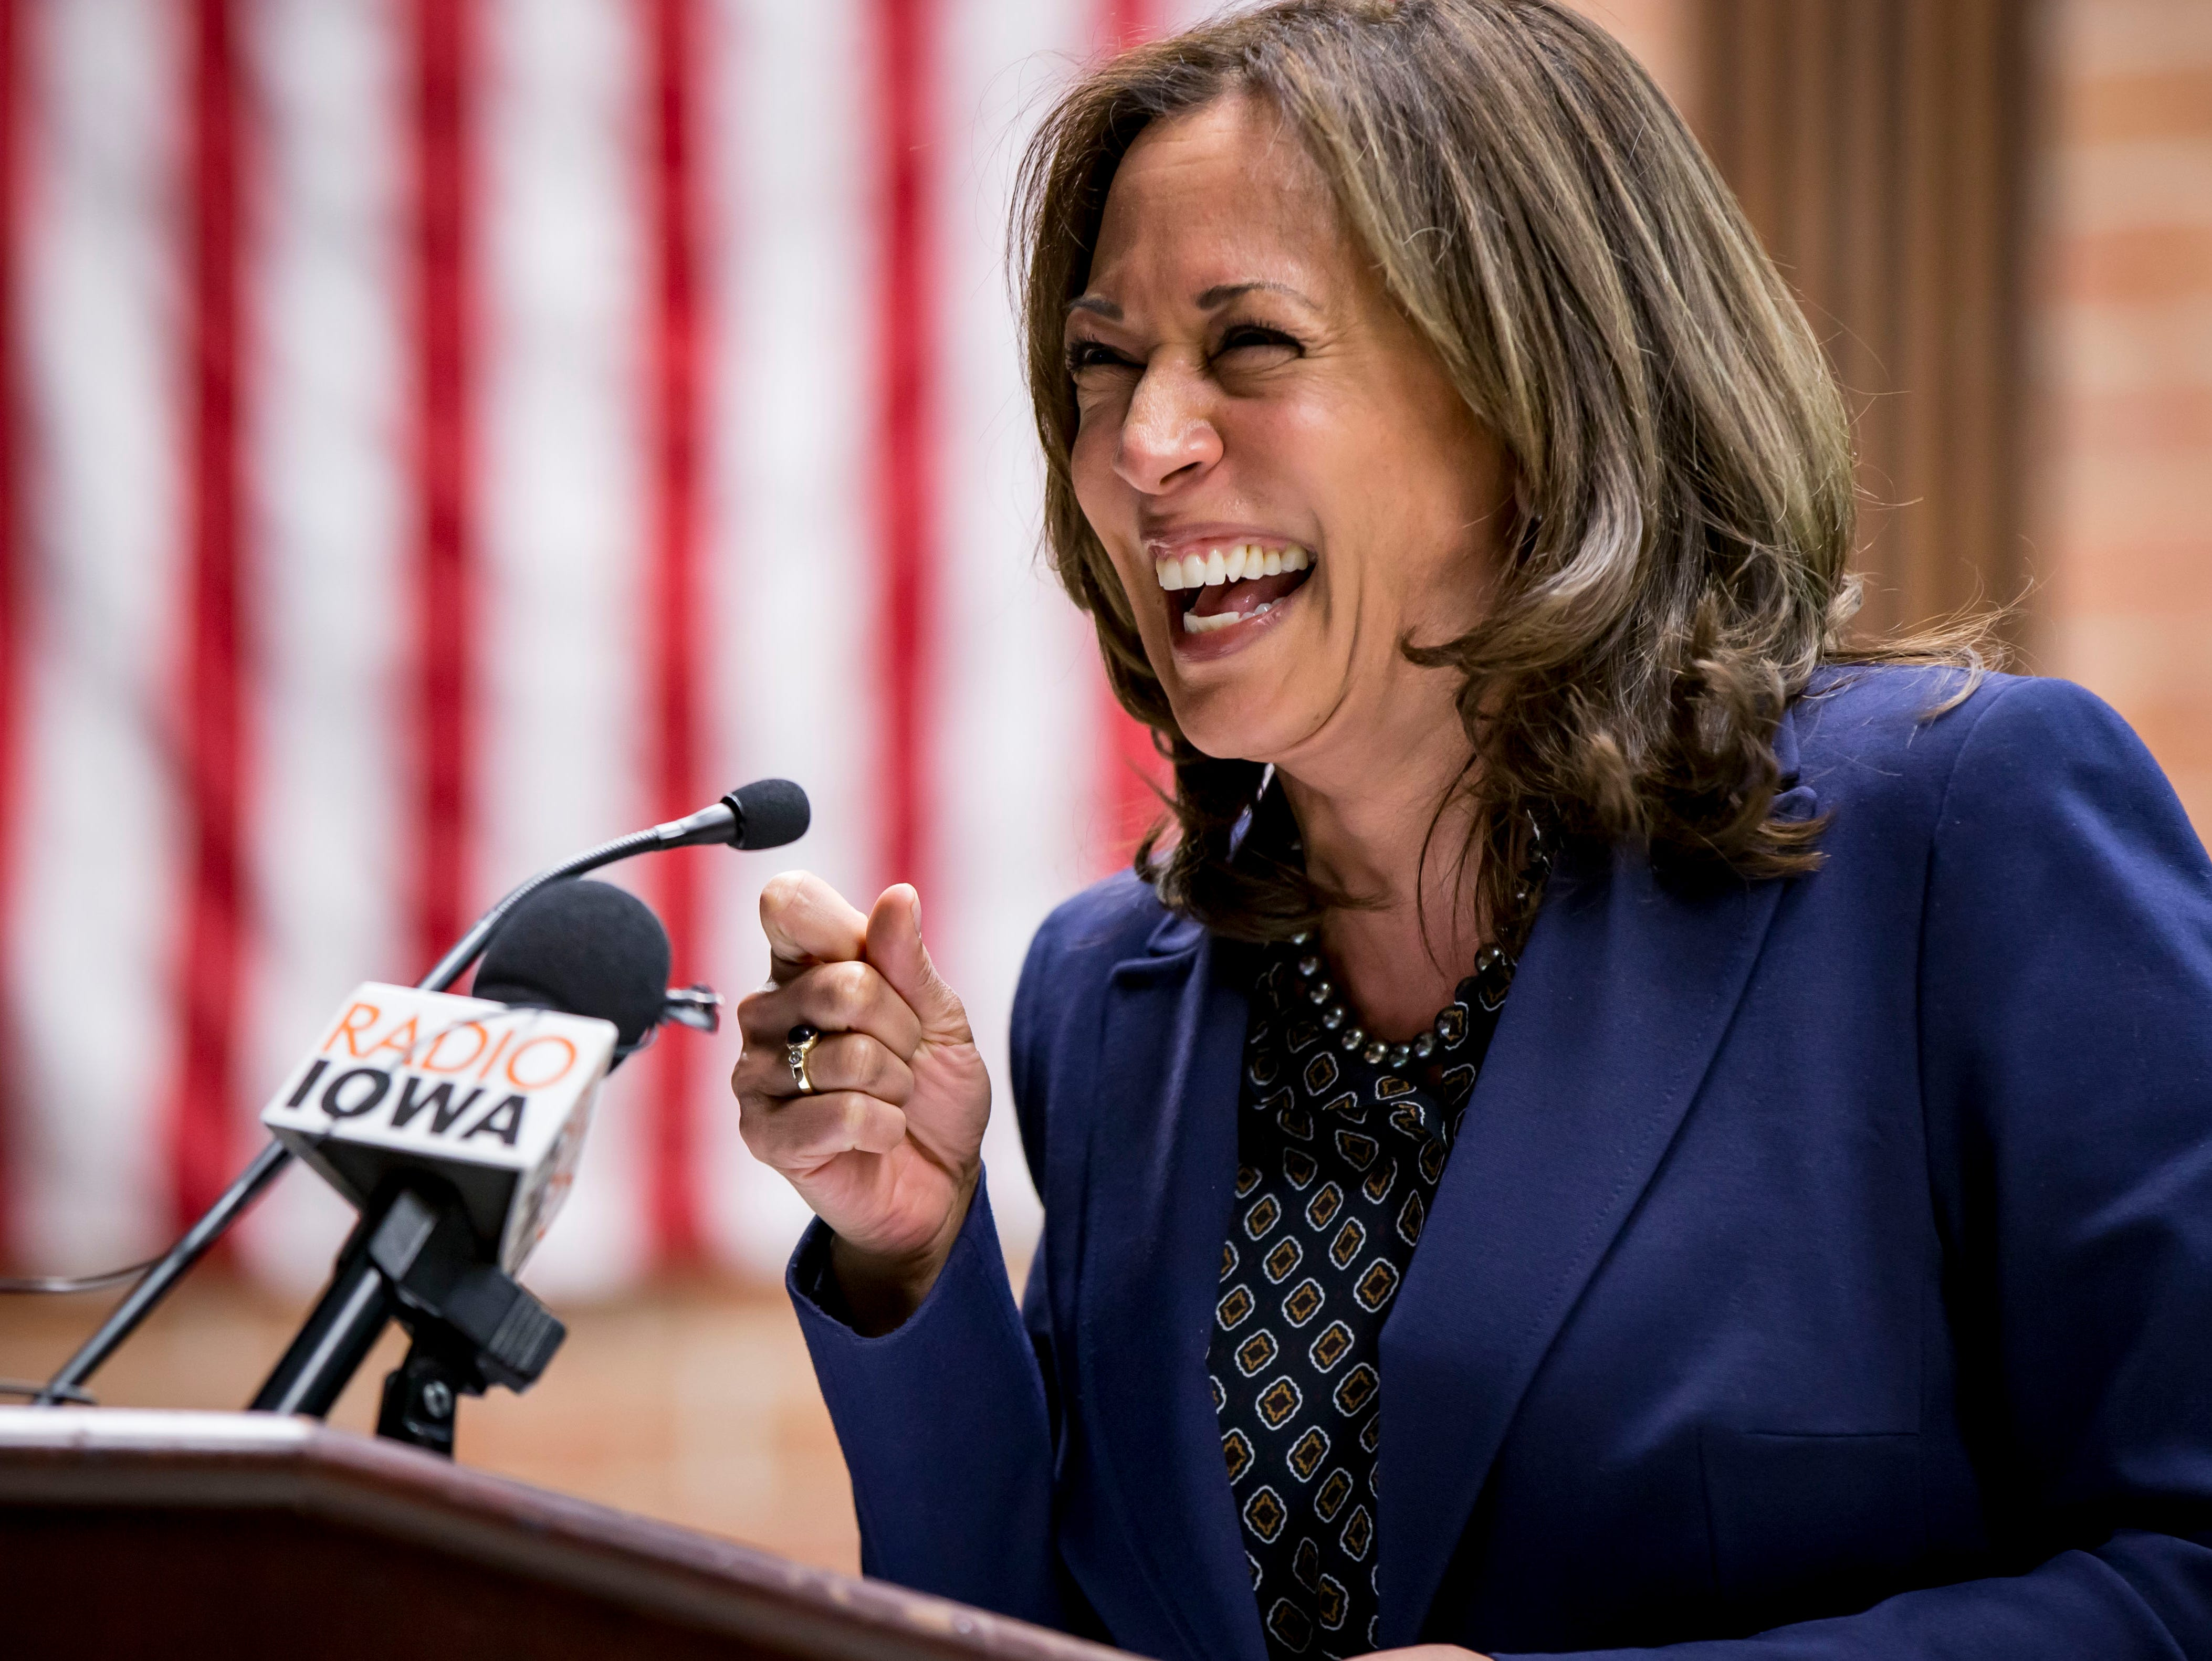 Democratic Senator Kamala Harris of California laughs during a DMACC Early Vote rally  Monday, Oct. 22, 2018, in Ankeny, Iowa. She appeared with Congressional candidate Cindy Axne, State Senate candidate Amber Gustafson and Iowa House candidate Heather Maston.